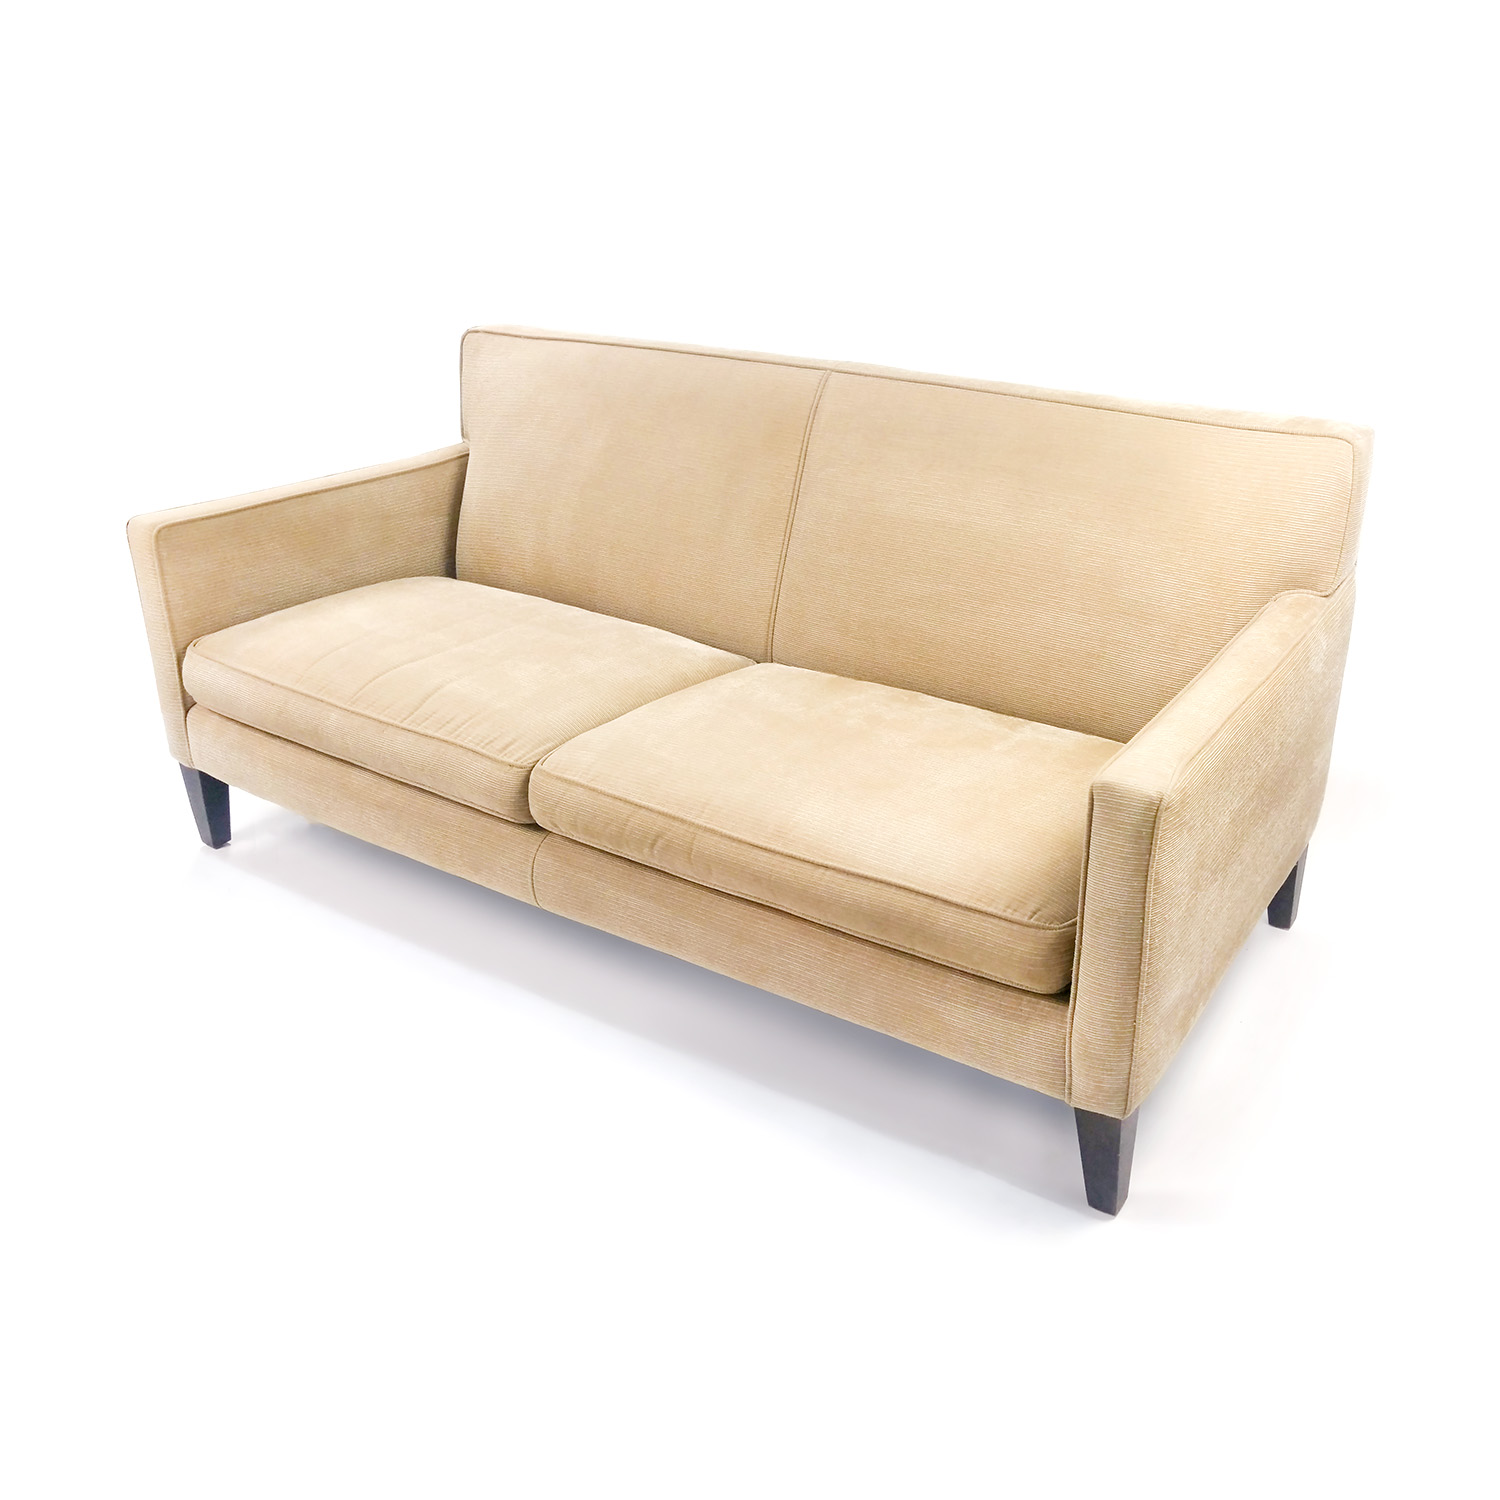 Used Sofas Online: Crate And Barrel Crate And Barrel Couch / Sofas